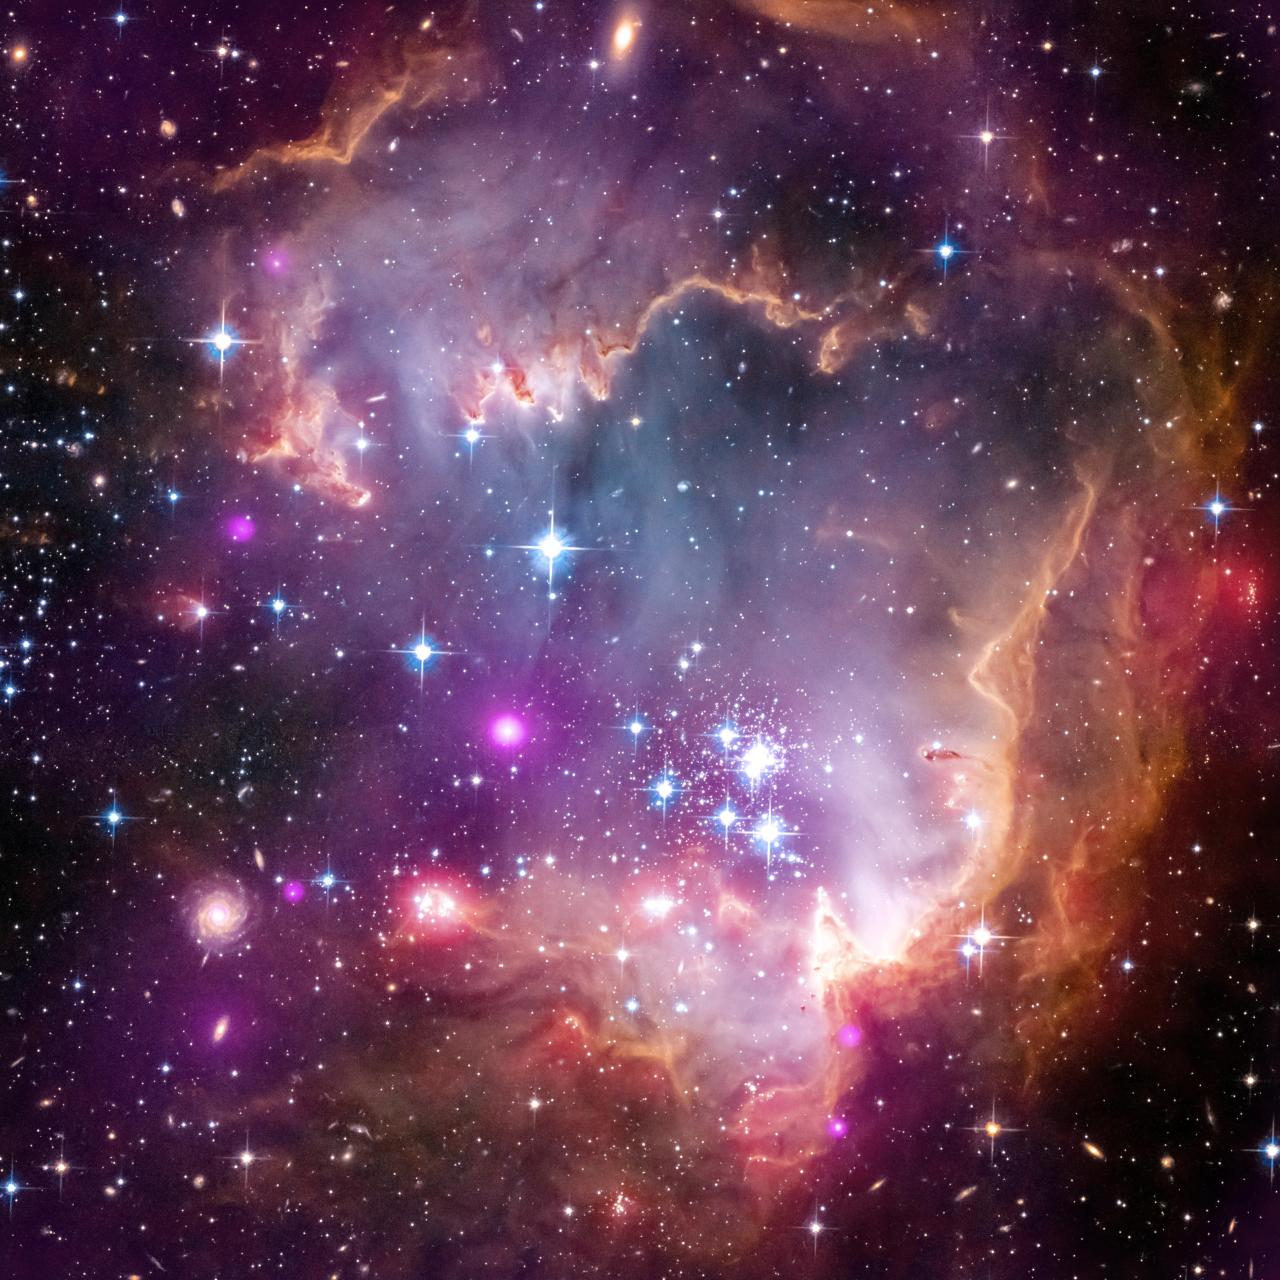 "Taken Under the 'Wing' of the Small Magellanic Cloud  The tip of the ""wing"" of the Small Magellanic Cloud galaxy is dazzling in this new view from NASA's Great Observatories. The Small Magellanic Cloud, or SMC, is a small galaxy about 200,000 light-years way that orbits our own Milky Way spiral galaxy. The colors represent wavelengths of light across a broad spectrum. X-rays from NASA's Chandra X-ray Observatory are shown in purple; visible-light from NASA's Hubble Space Telescope is colored red, green and blue; and infrared observations from NASA's Spitzer Space Telescope are also represented in red. The spiral galaxy seen in the lower corner is actually behind this nebula. Other distant galaxies located hundreds of millions of light-years or more away can be seen sprinkled around the edge of the image. The SMC is one of the Milky Way's closest galactic neighbors. Even though it is a small, or so-called dwarf galaxy, the SMC is so bright that it is visible to the unaided eye from the Southern Hemisphere and near the equator. Many navigators, including Ferdinand Magellan who lends his name to the SMC, used it to help find their way across the oceans. Modern astronomers are also interested in studying the SMC (and its cousin, the Large Magellanic Cloud), but for very different reasons. Because the SMC is so close and bright, it offers an opportunity to study phenomena that are difficult to examine in more distant galaxies. New Chandra data of the SMC have provided one such discovery: the first detection of X-ray emission from young stars, with masses similar to our sun, outside our Milky Way galaxy. NASA's Jet Propulsion Laboratory, Pasadena, Calif., manages the Spitzer Space Telescope mission for NASA's Science Mission Directorate, Washington. Science operations are conducted at the Spitzer Science Center at the California Institute of Technology in Pasadena. Data are archived at the Infrared Science Archive housed at the Infrared Processing and Analysis Center at Caltech. Caltech manages JPL for NASA. For more information about Spitzer, visit http://spitzer.caltech.edu andhttp://www.nasa.gov/spitzer. Image Credit:NASA/CXC/JPL-Caltech/STScIImage Addition Date:2013-04-03"